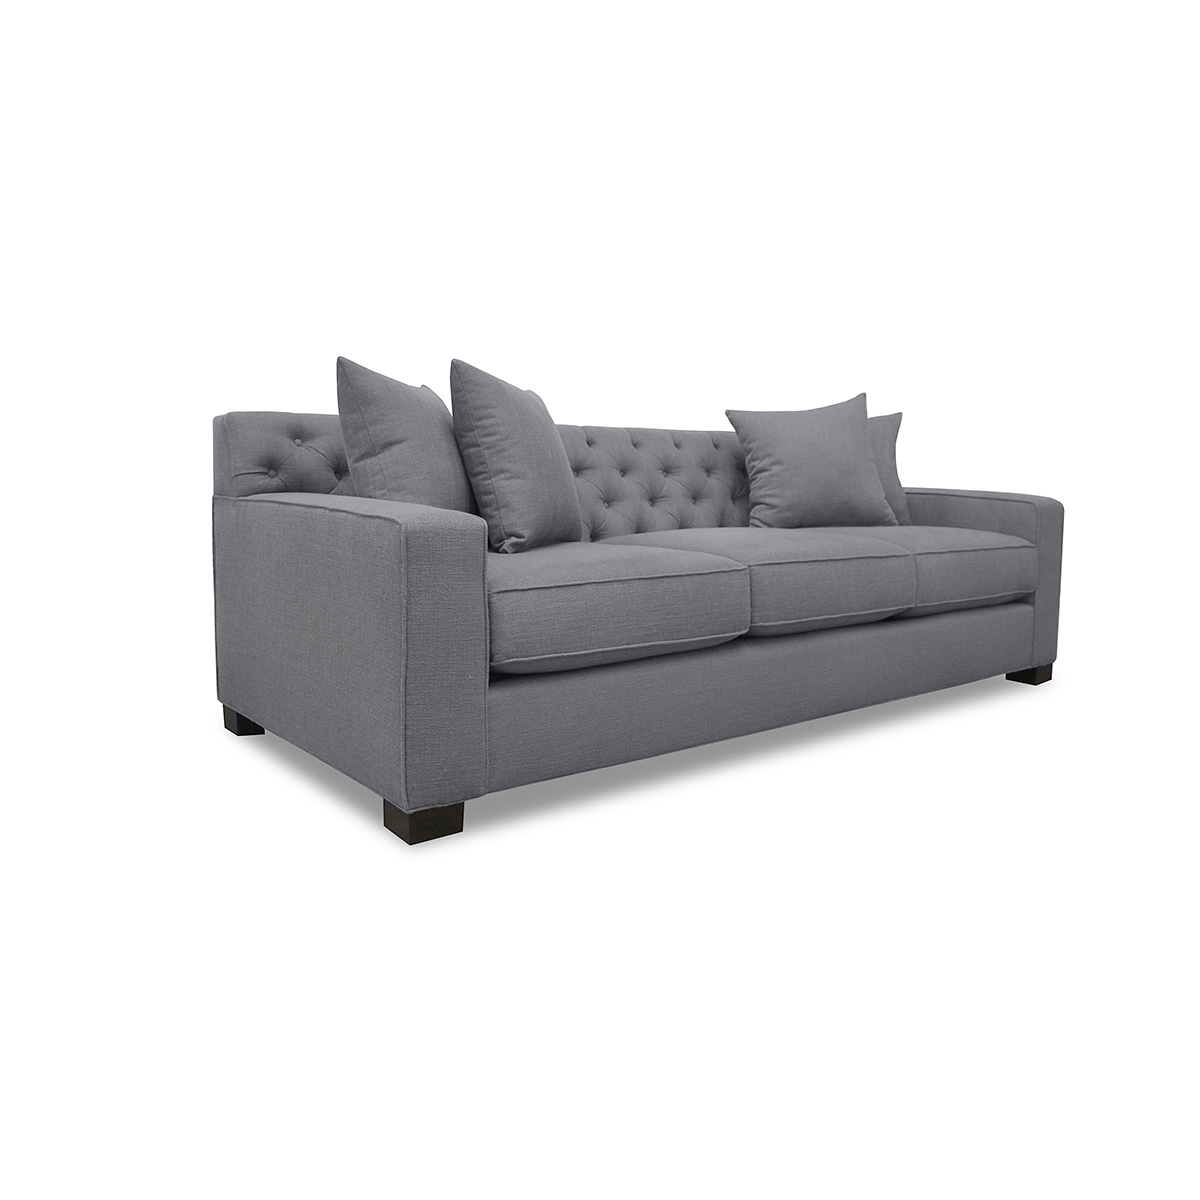 Stupendous Alisse Tufted Sofa Pabps2019 Chair Design Images Pabps2019Com